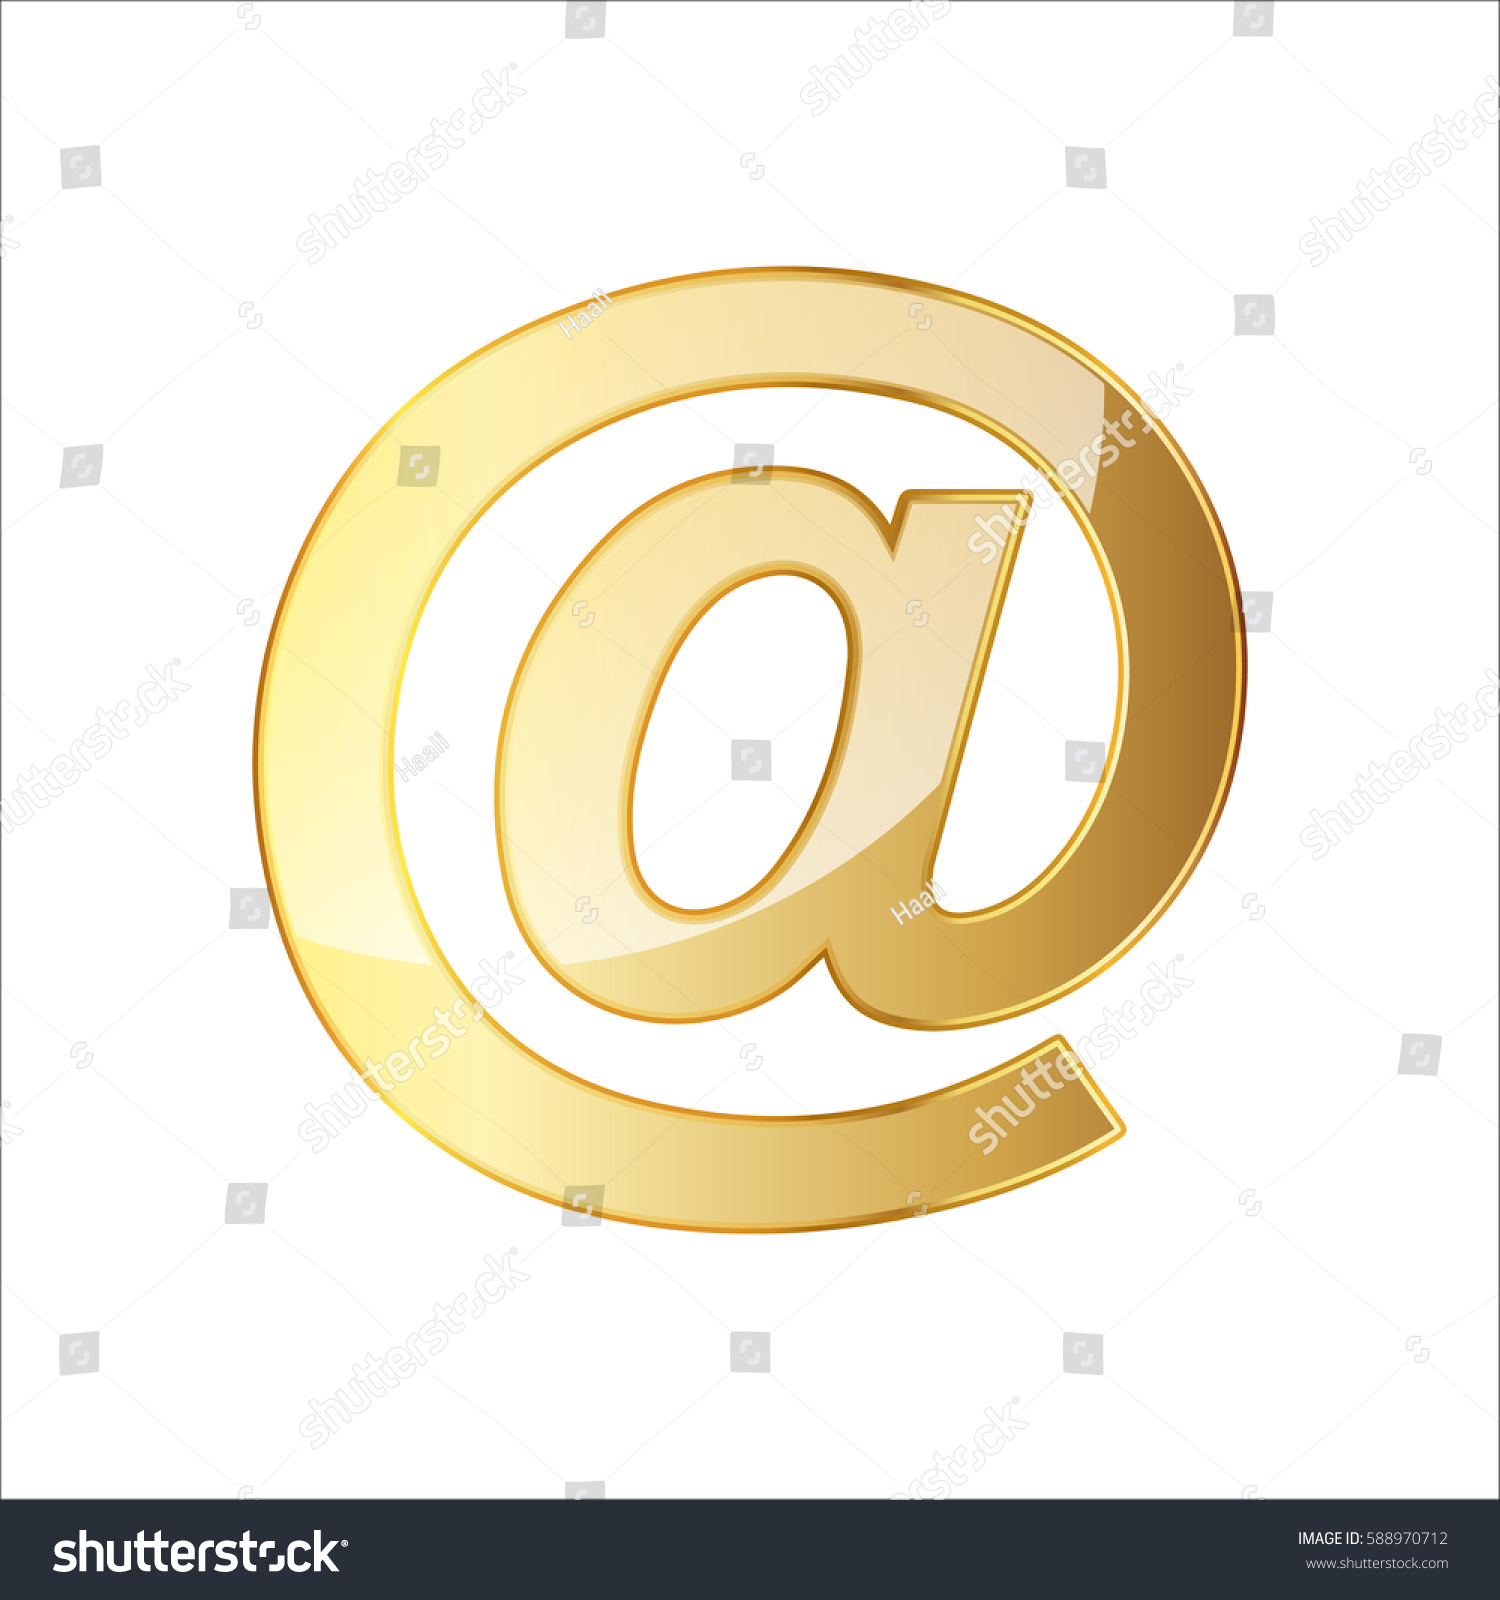 Golden Email Icon Vector Illustration Golden Email Symbol Isolated